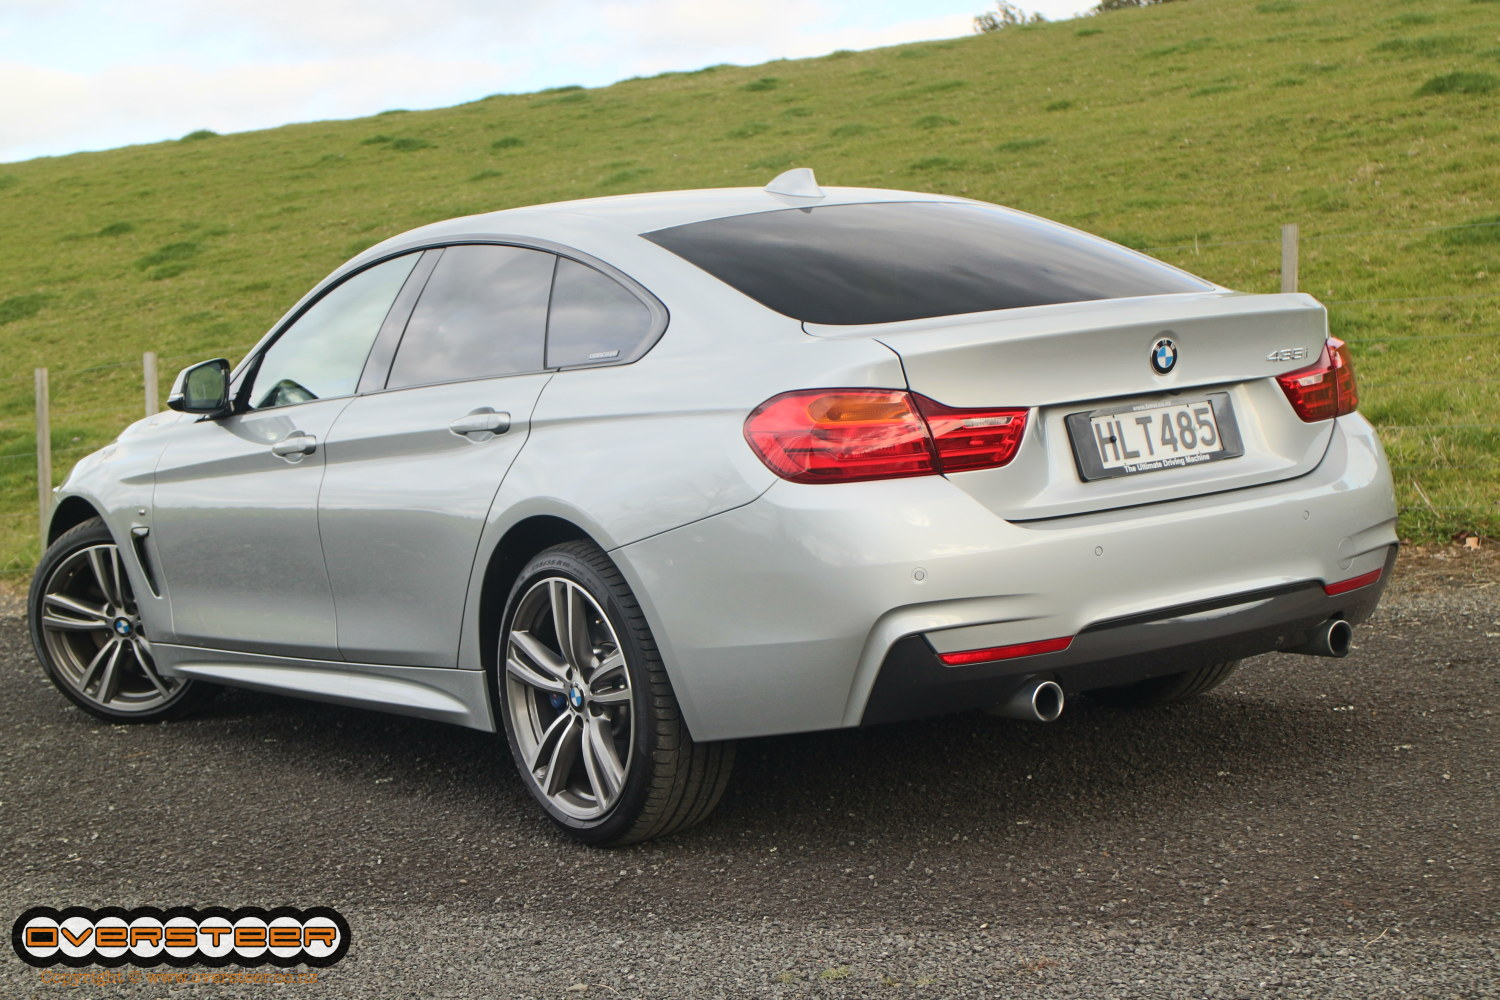 Bmw 435i zhp coupe 2016 pictures information amp specs - Quick Drive Bmw 435i Gran Coupe Oversteer